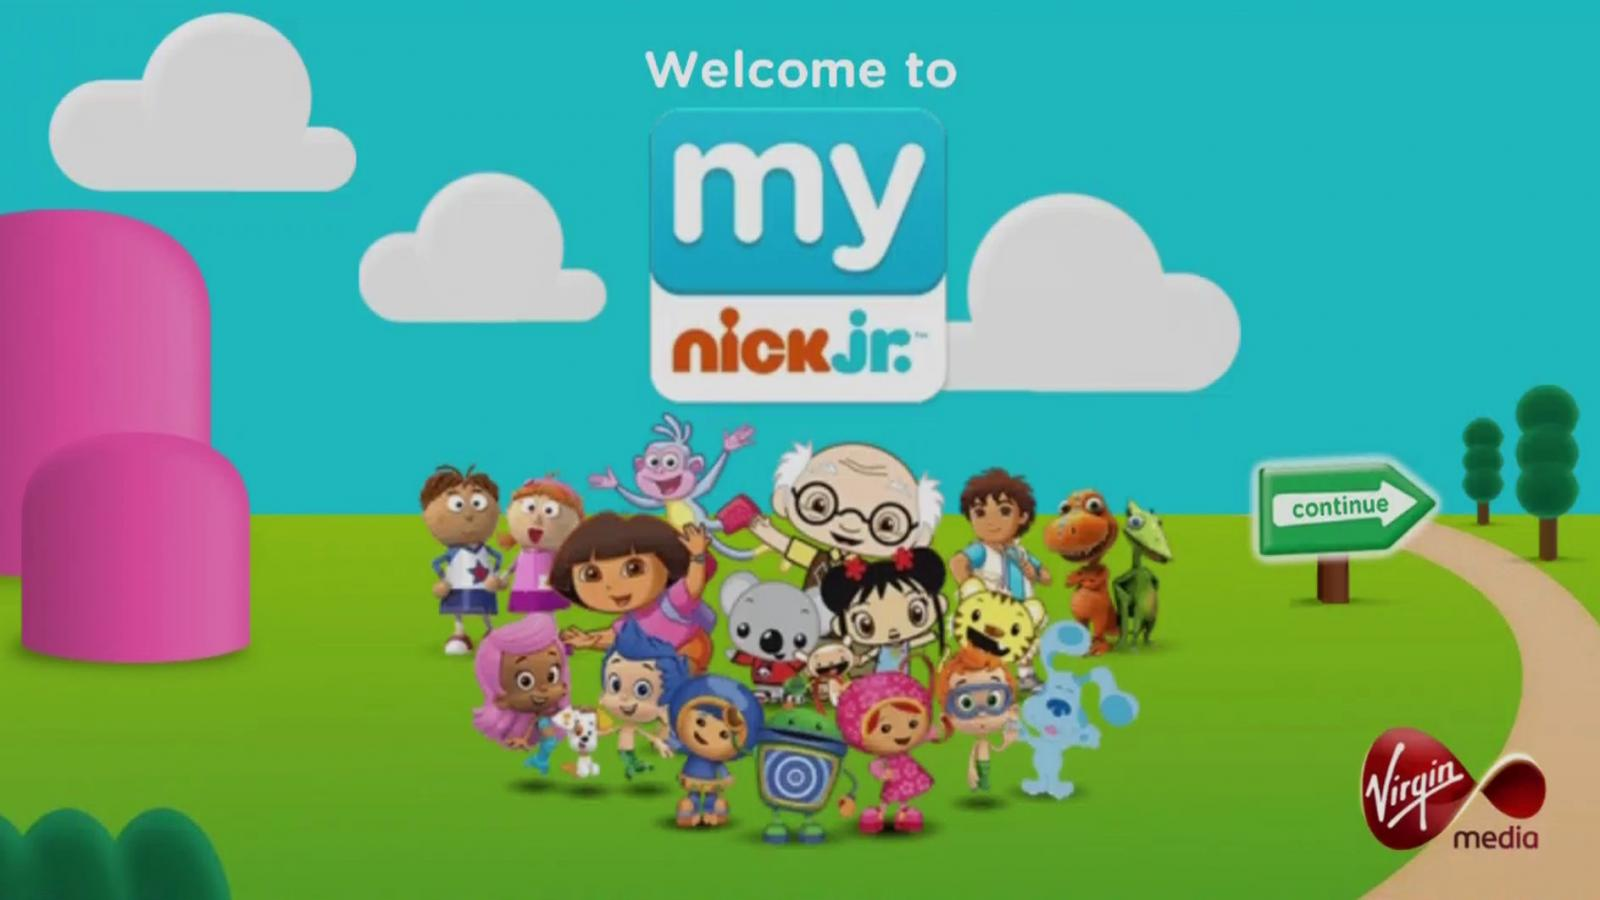 Nickjr Wallpaper